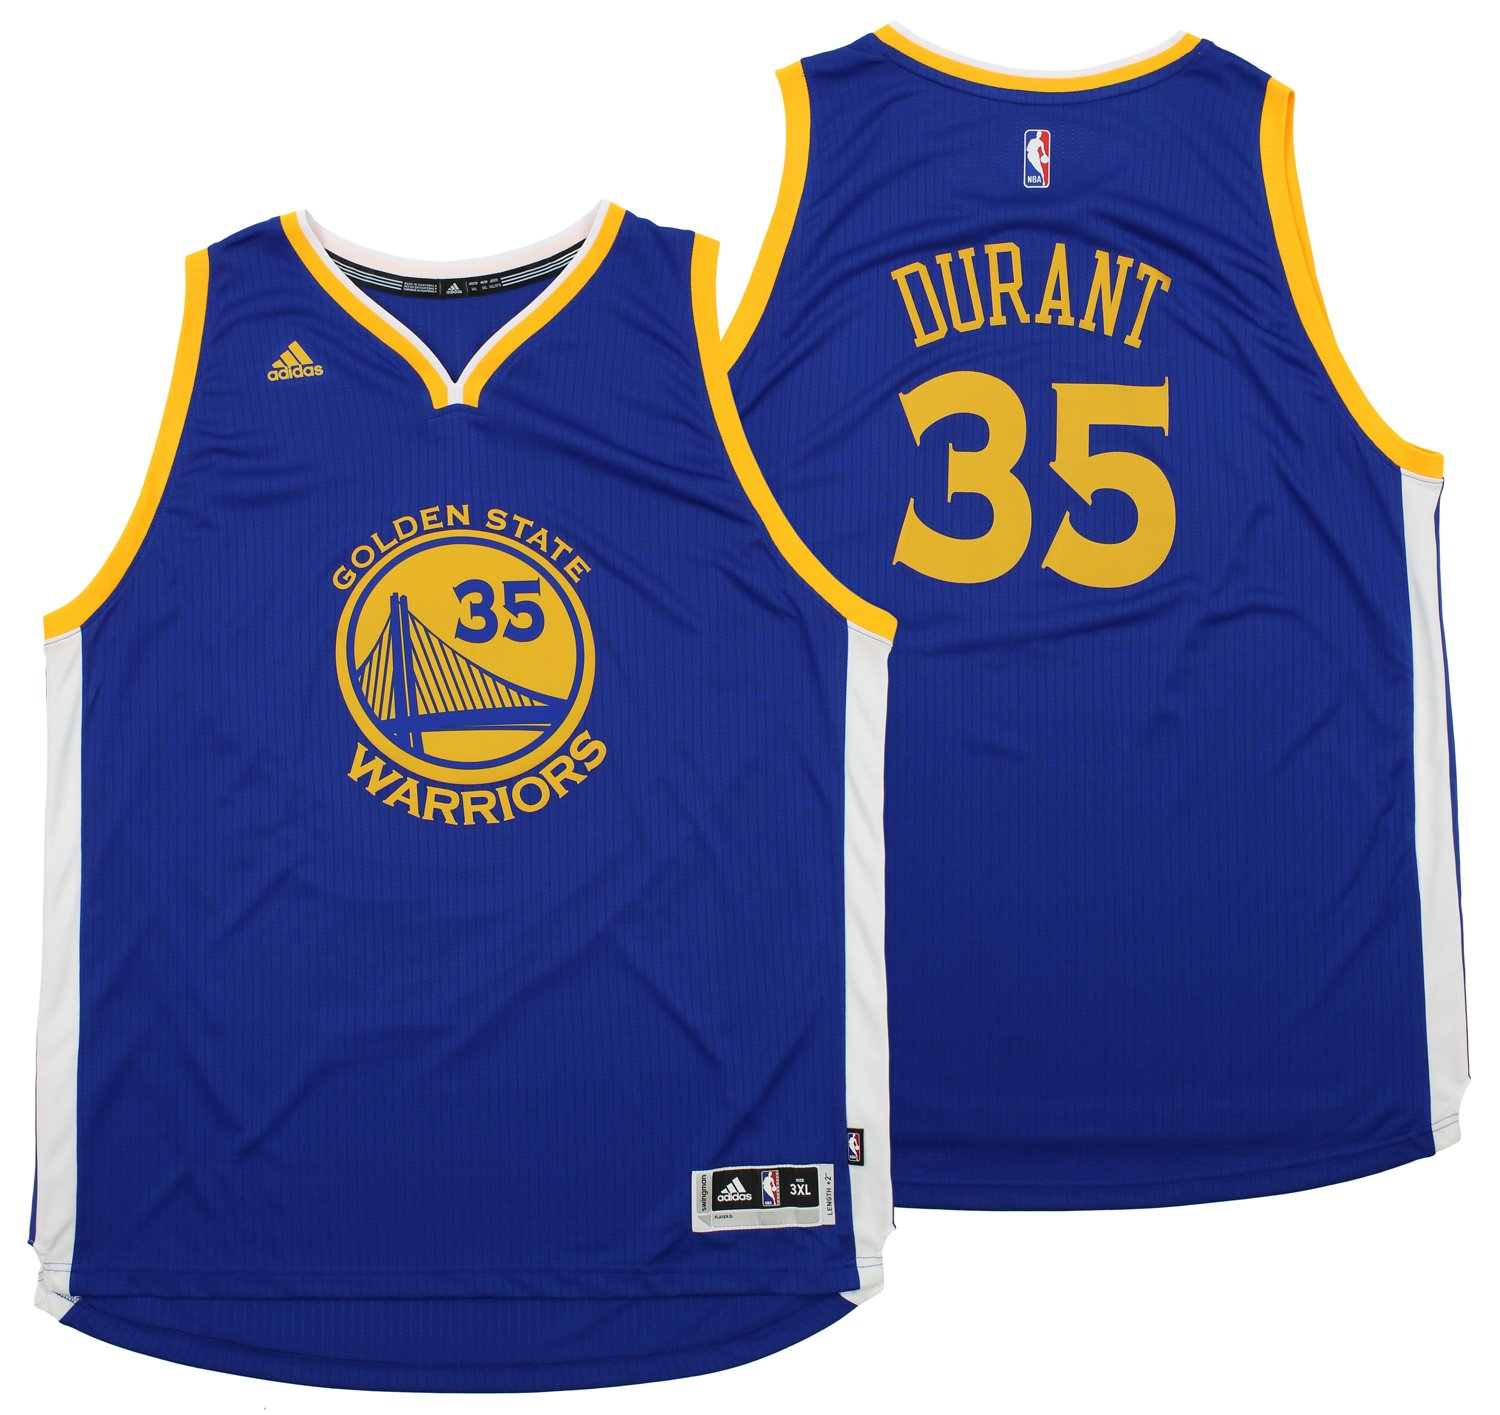 9c0dd4fe614 Amazon.com   adidas Kevin Durant Golden State Warriors Swingman Jersey    Sports   Outdoors